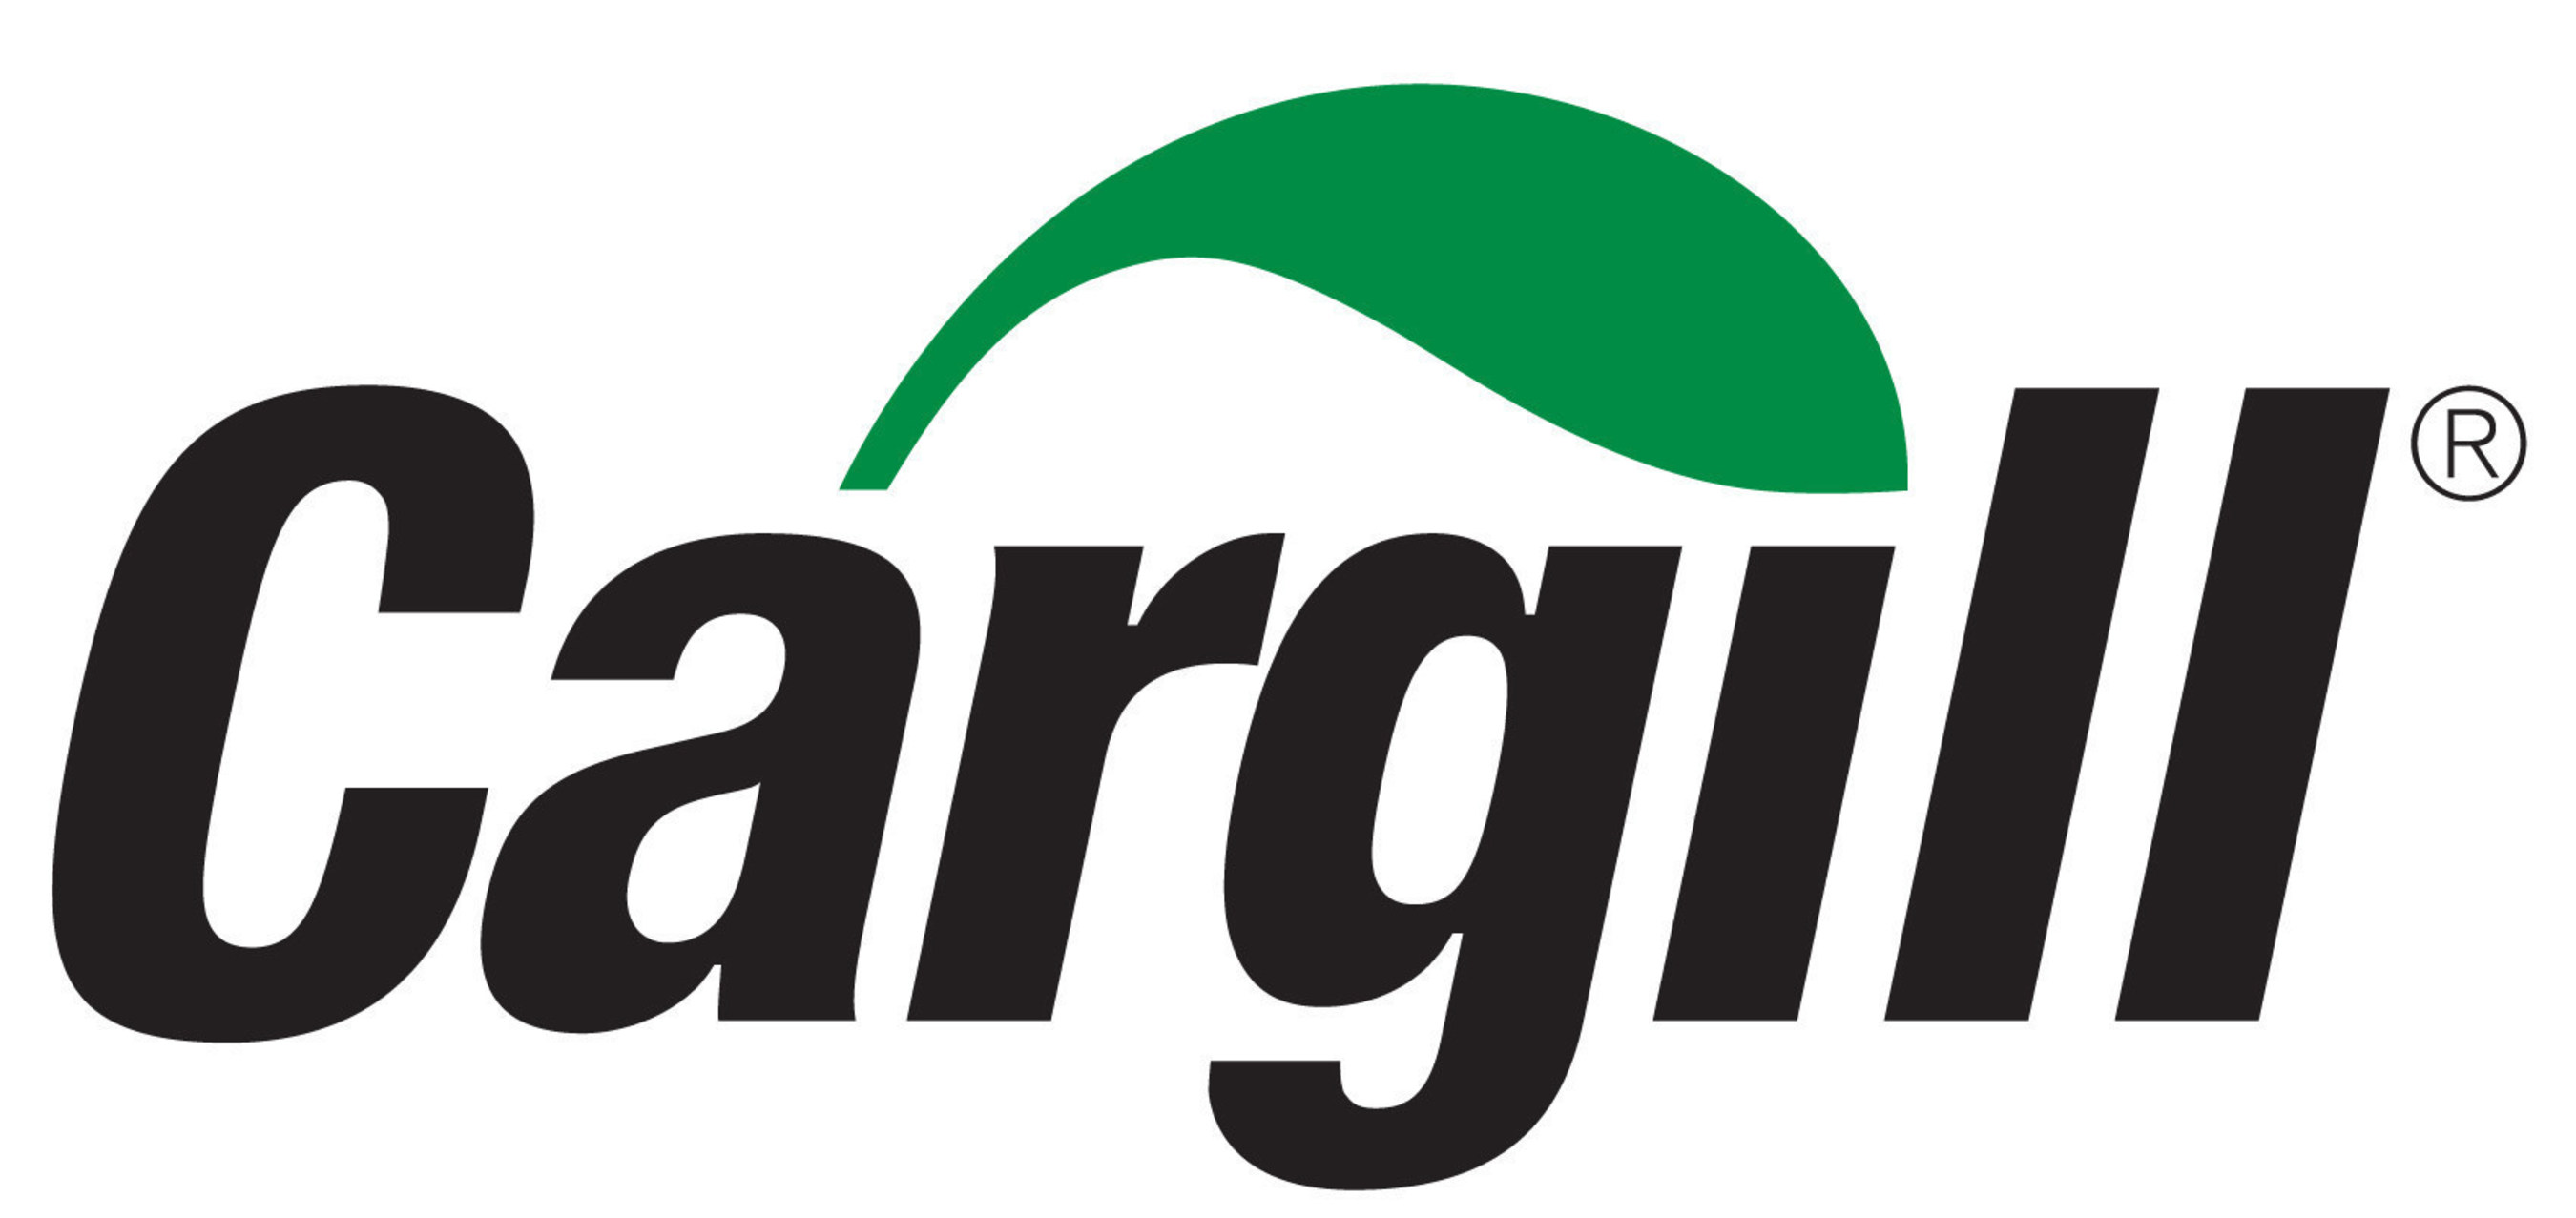 Cargill brings home the bacon as presenting sponsor of BaconTown Bacon & Brew Fest